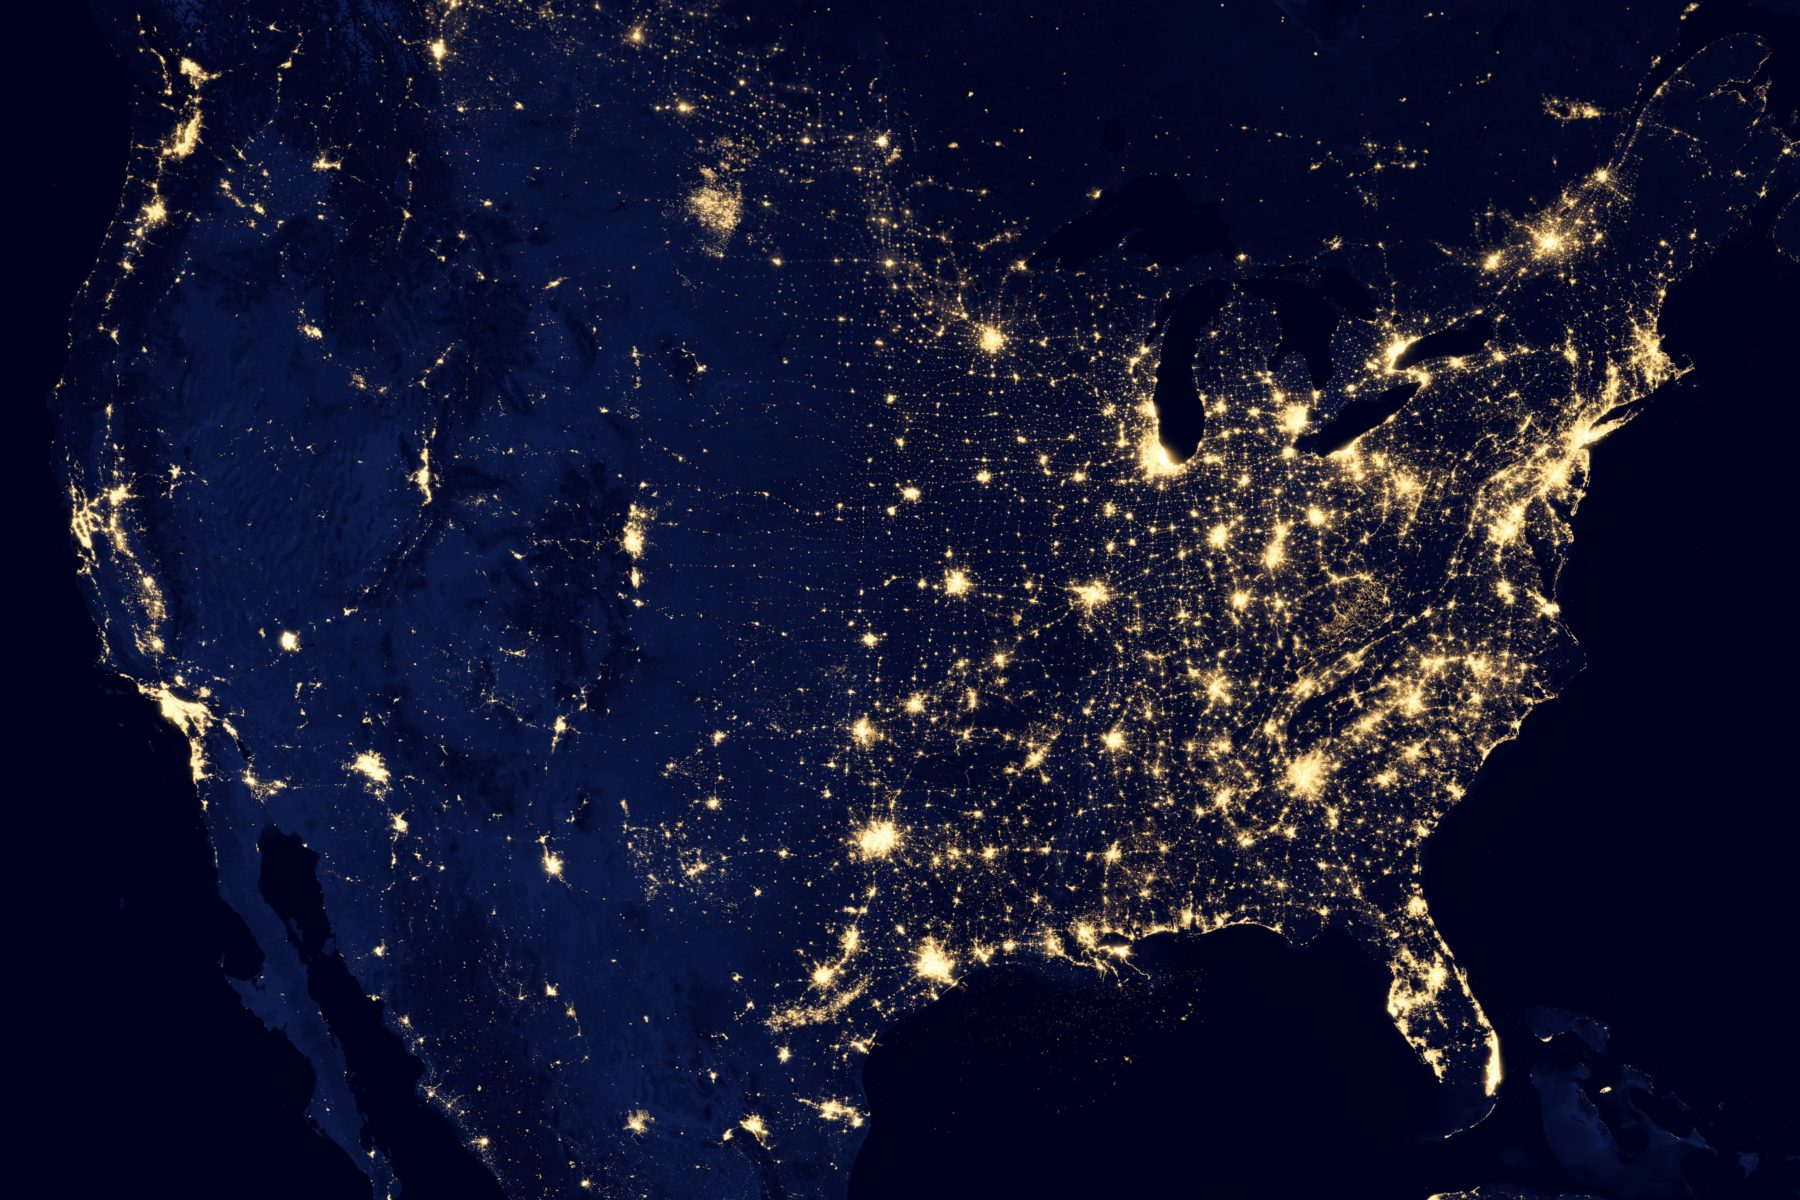 Satellite image of the united states at night shows yellow light of cities.